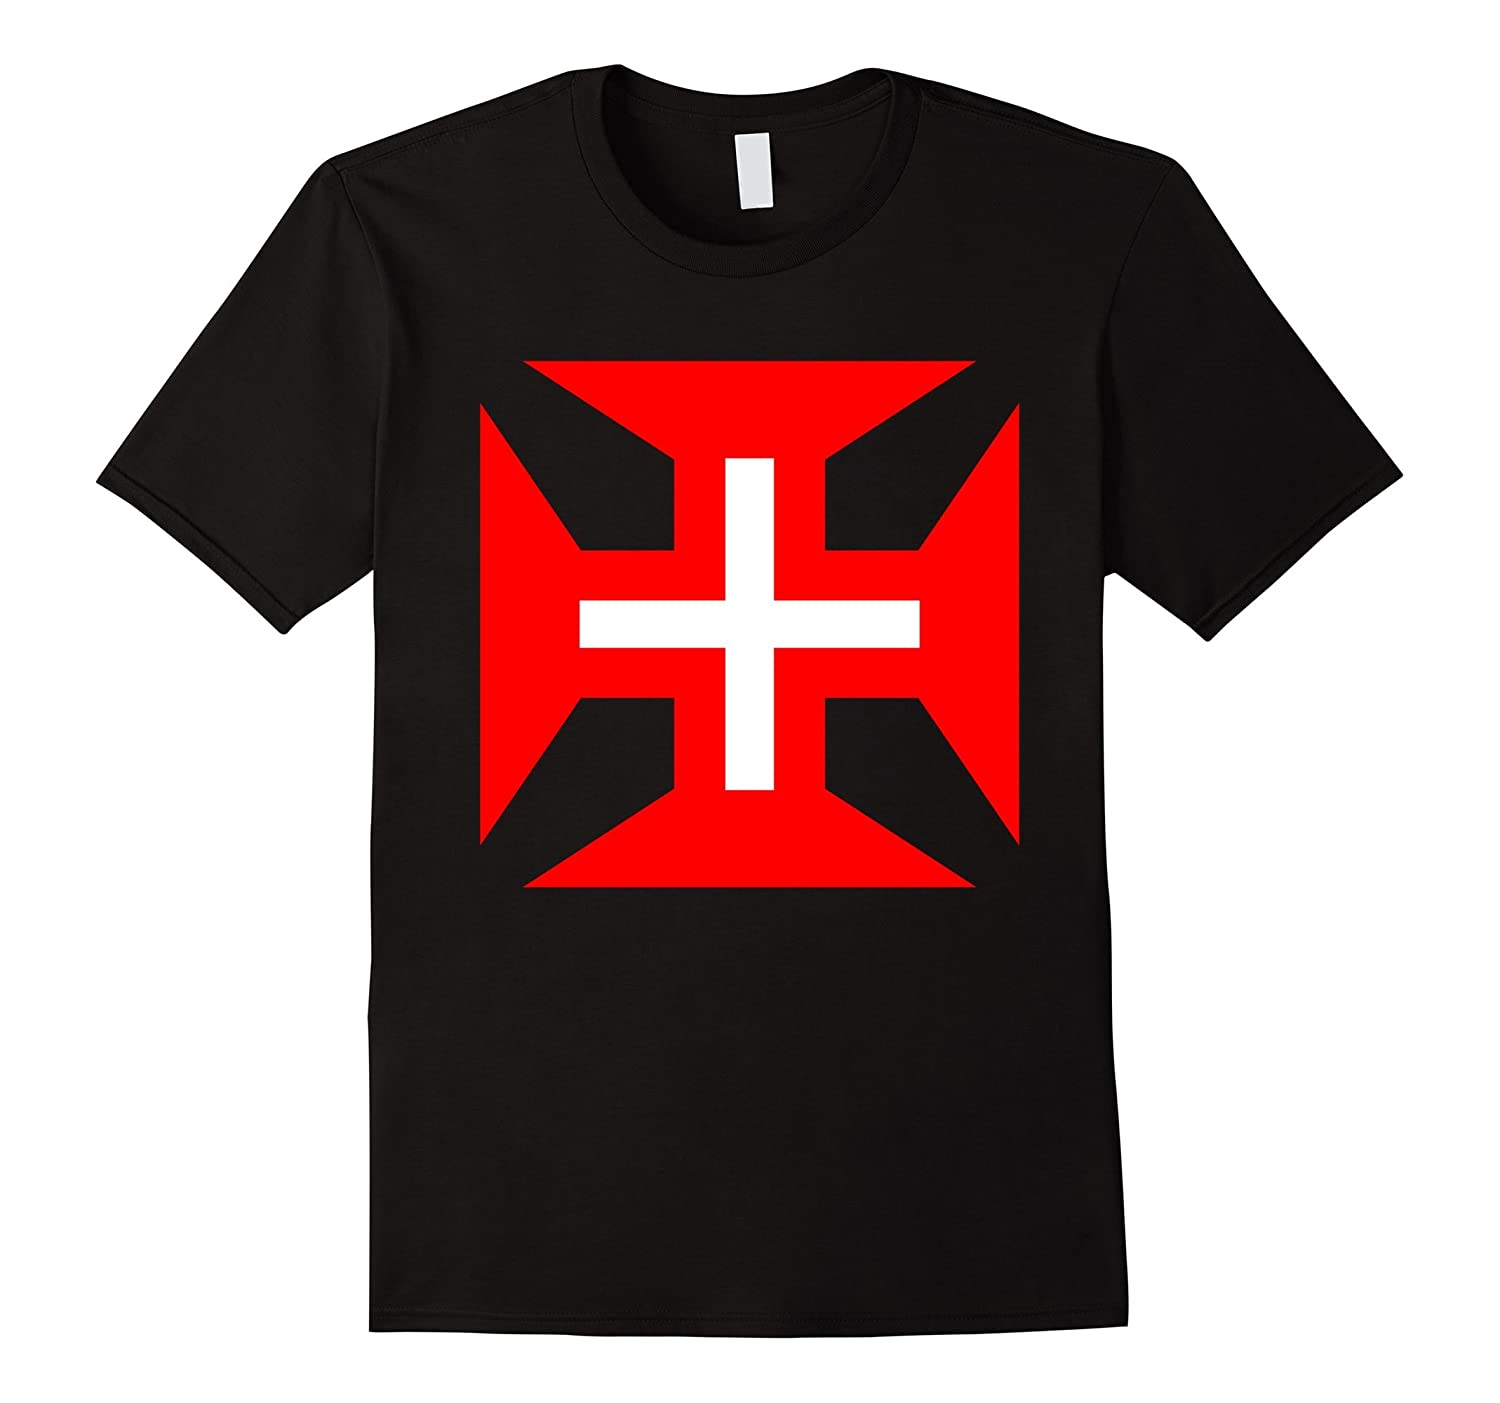 d6dbd2704 Order of Christ Cross T-Shirt Portugal Brazil Graphic Tee-ANZ ...